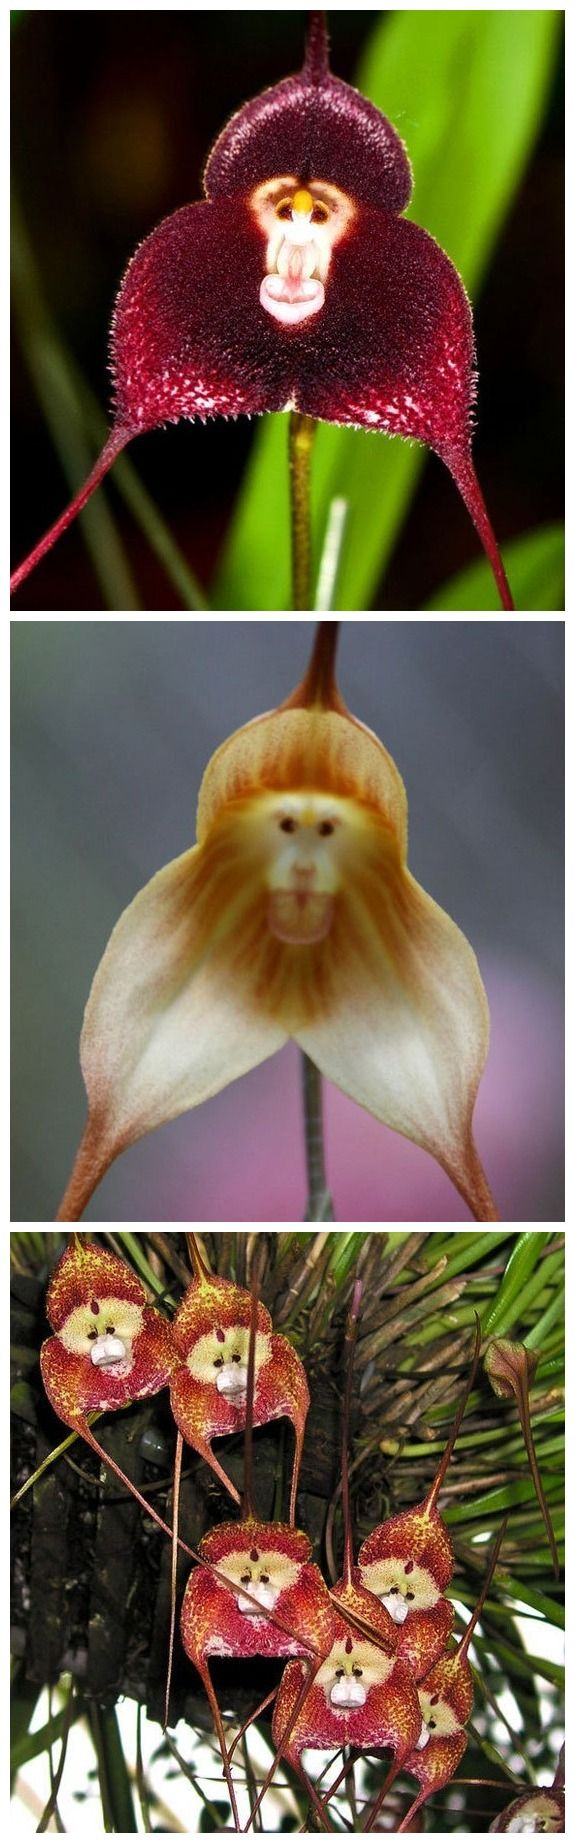 Don't feed the monkey orchids Wandering through the cloud forests of Ecuador